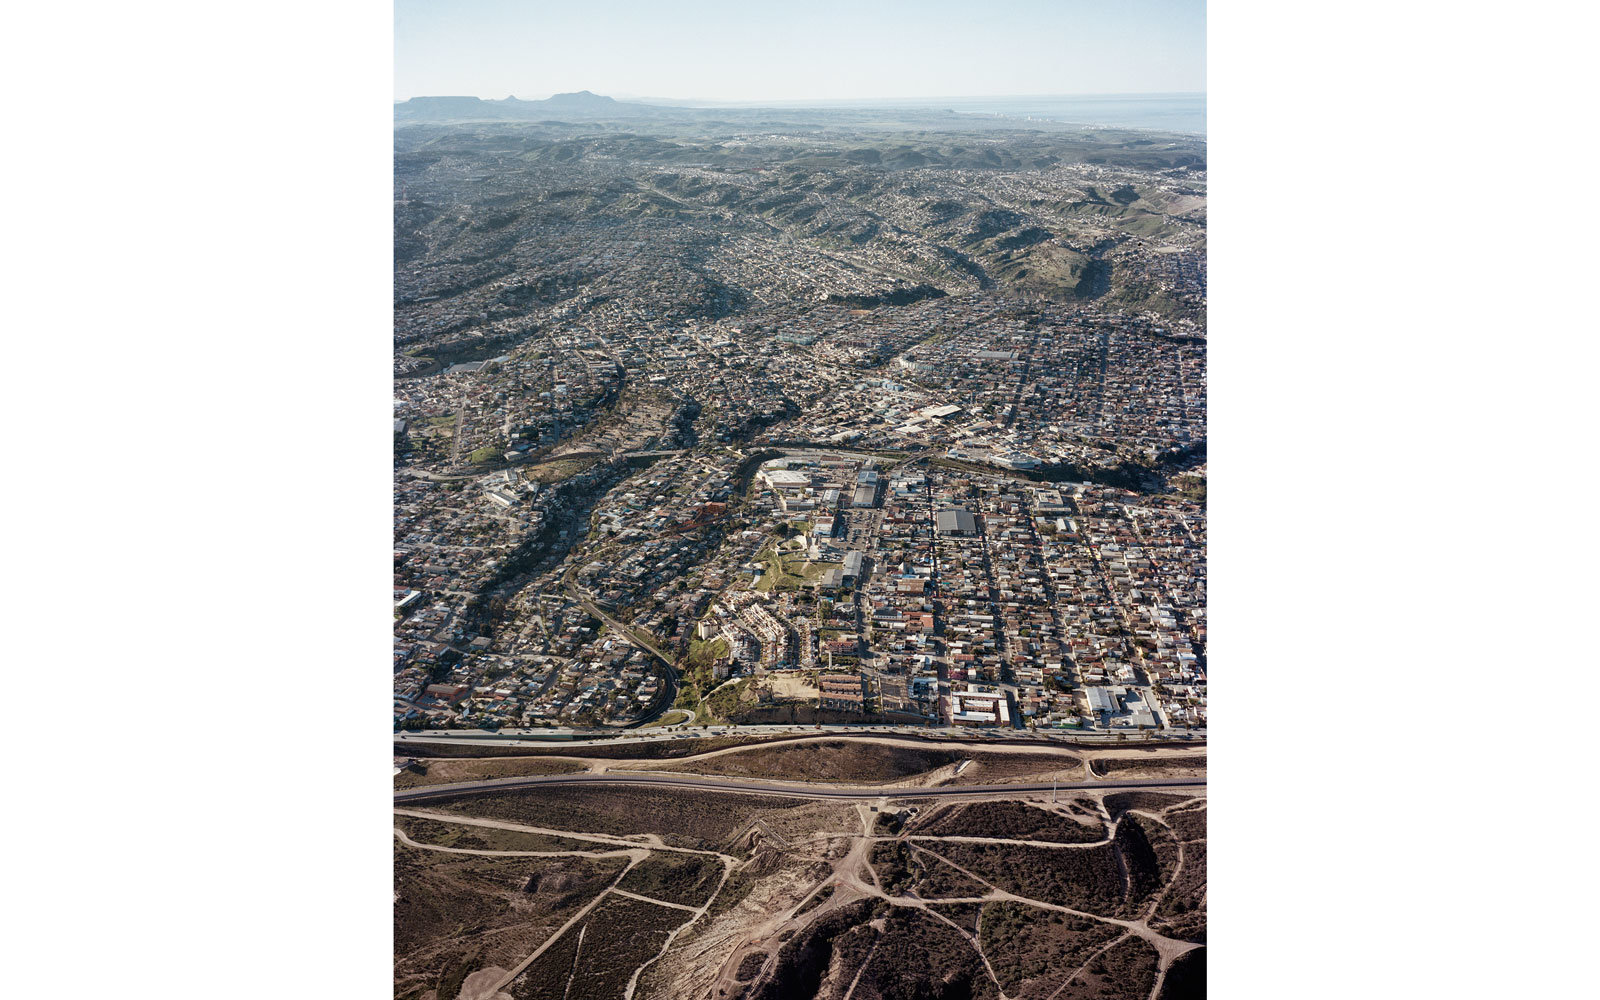 Heres What The USMexico Border Actually Looks Like Travel - Aerial maps over mexican us border